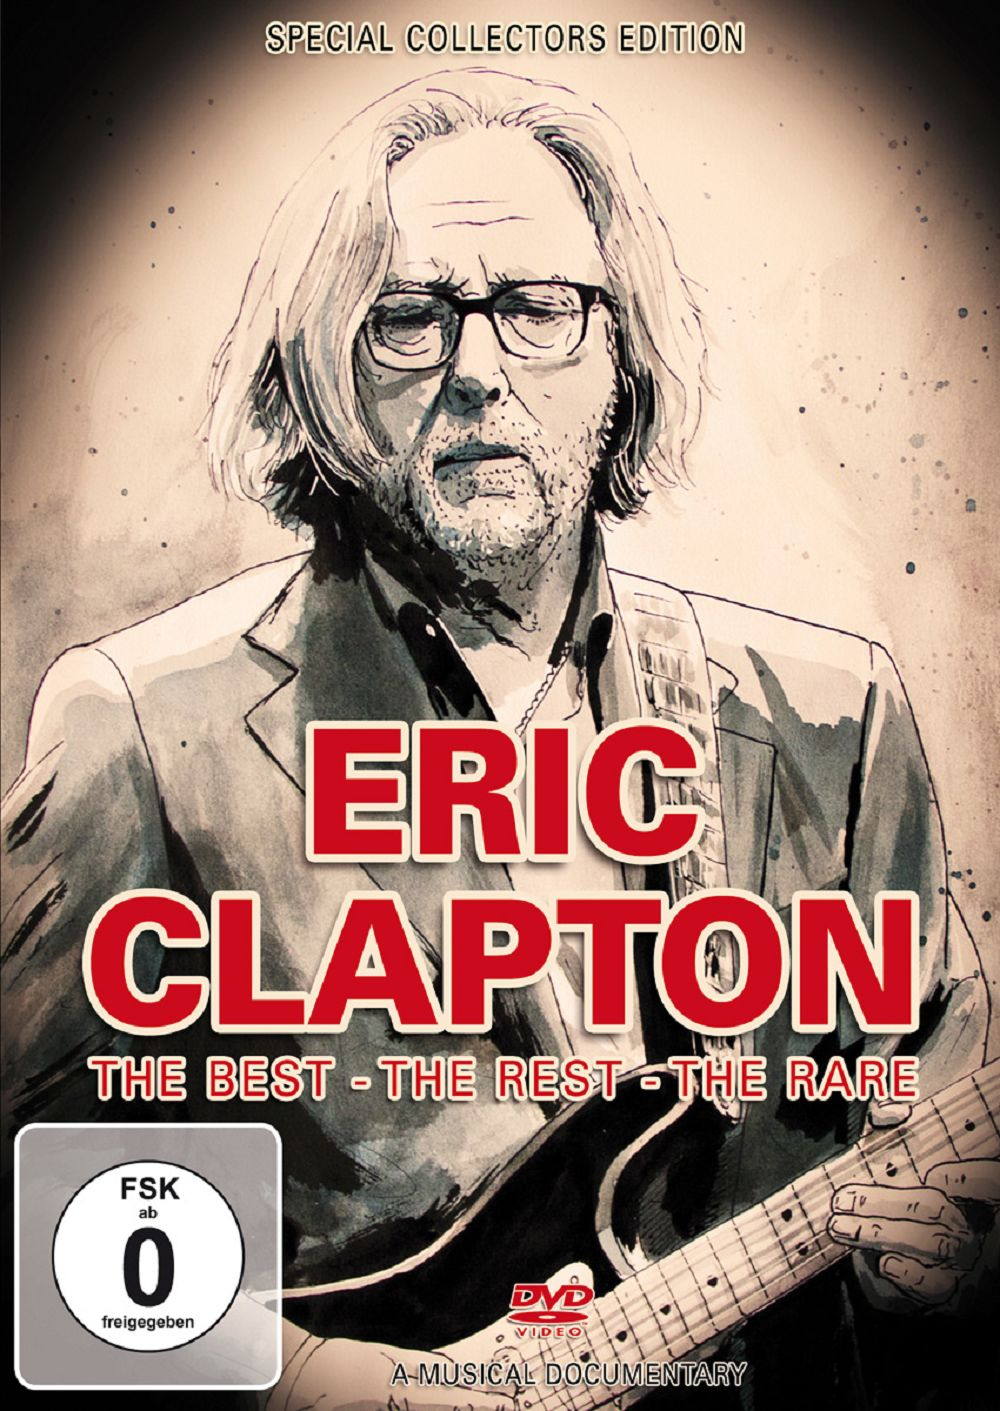 Eric.Clapton.The.Best.The.Rest.The.Rare.NTSC.2015.MDVD5